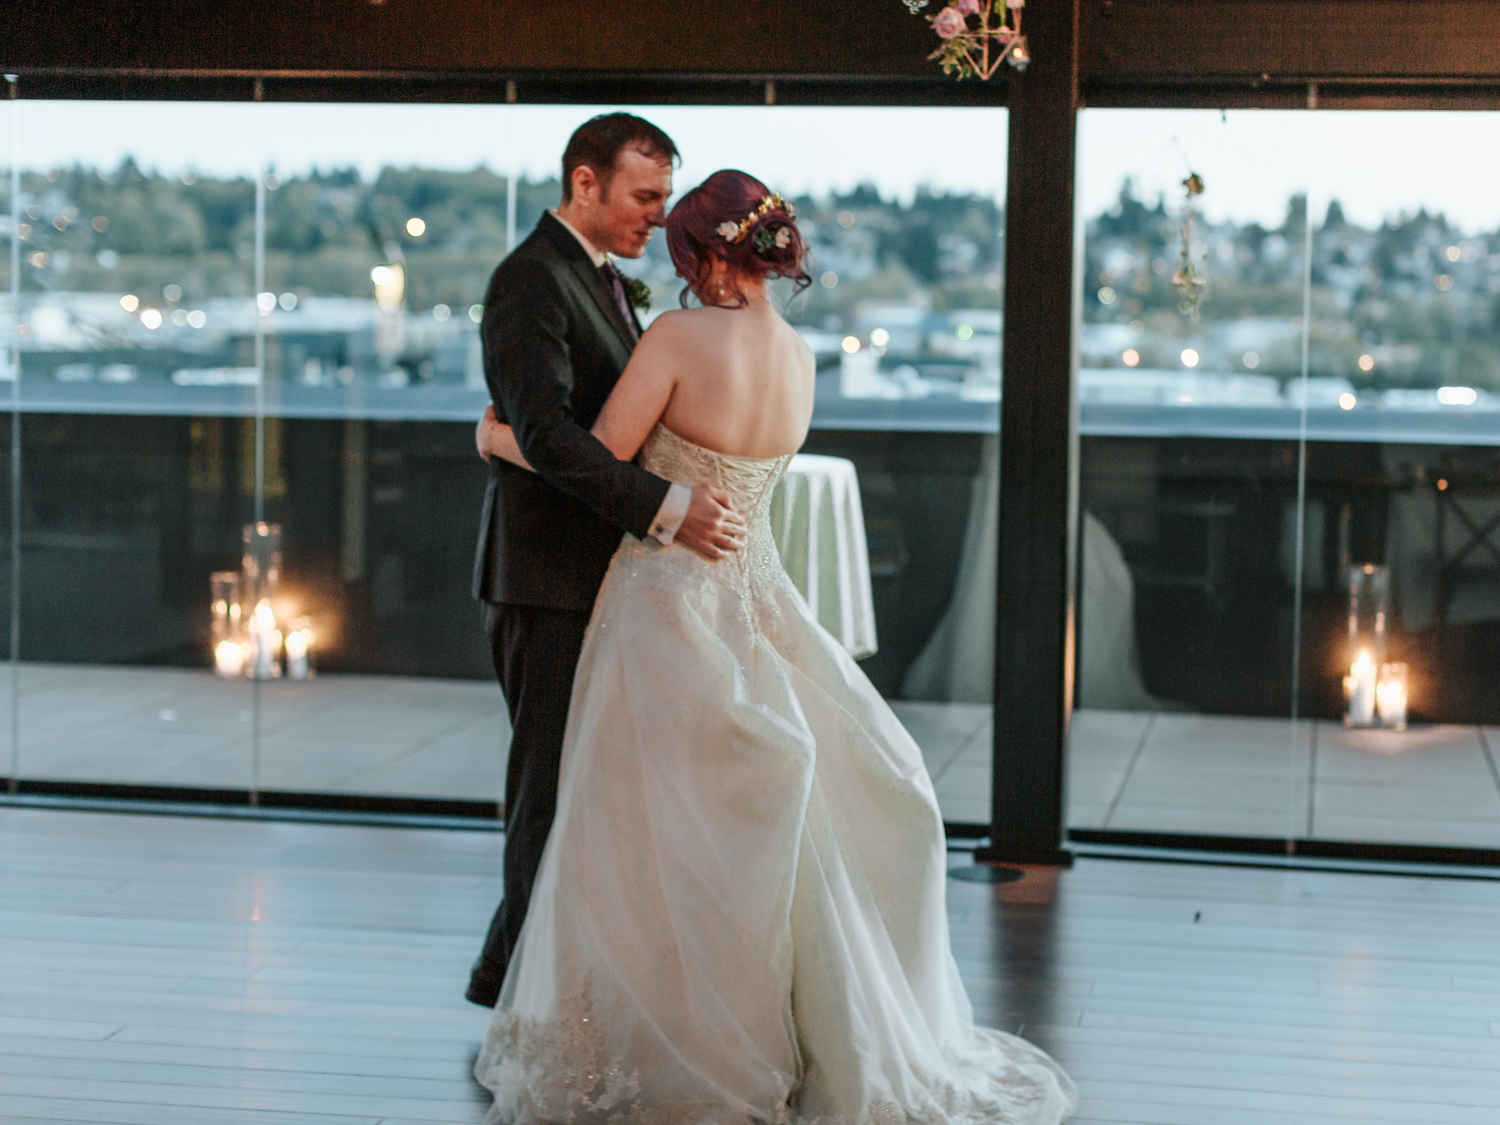 stolen glimpses ballard hotel seattle wedding photographer 14.jpg